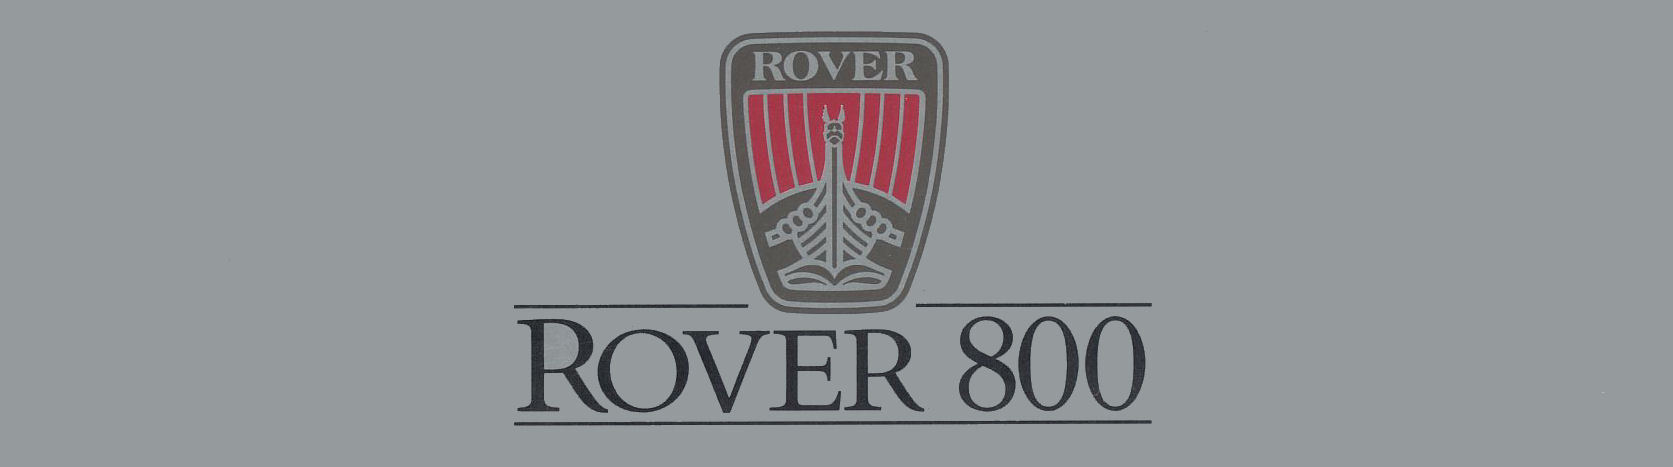 Rover 800_release